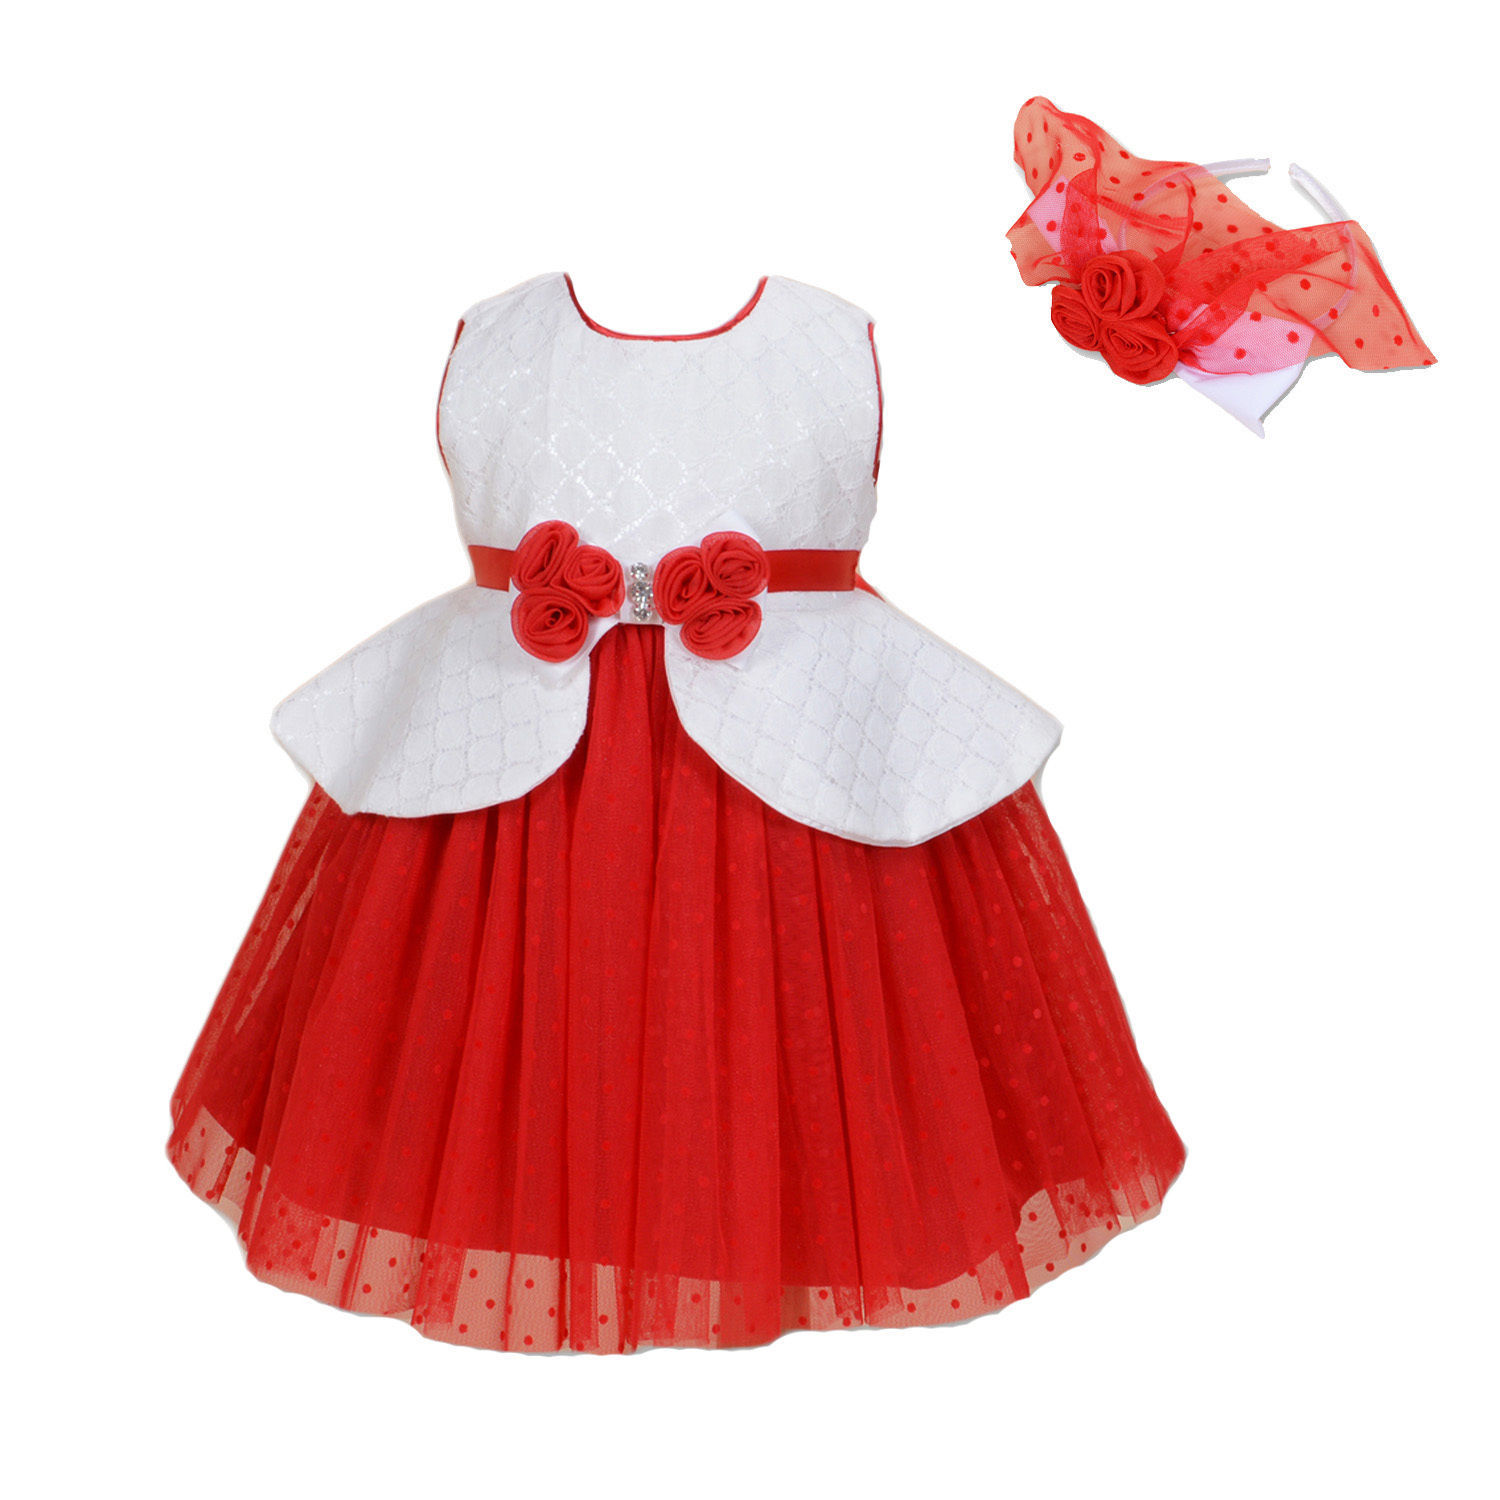 Primary image for New Flower Girl Party Bridesmaid Dress+Headband in Blue Red 12 Months to 9 Years